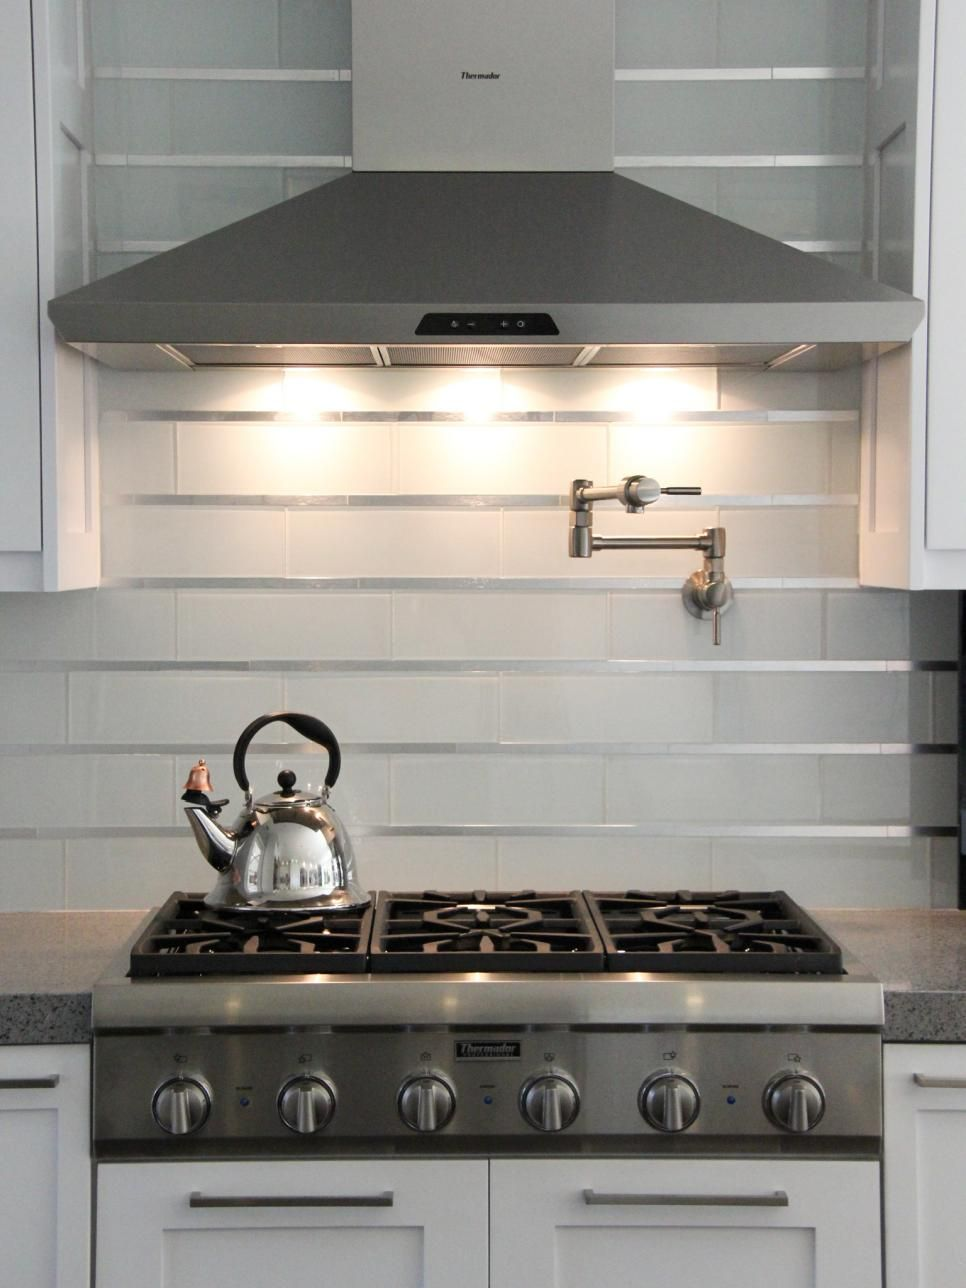 20 stainless steel kitchen backsplashes subway tiles stainless 20 stainless steel kitchen backsplashes